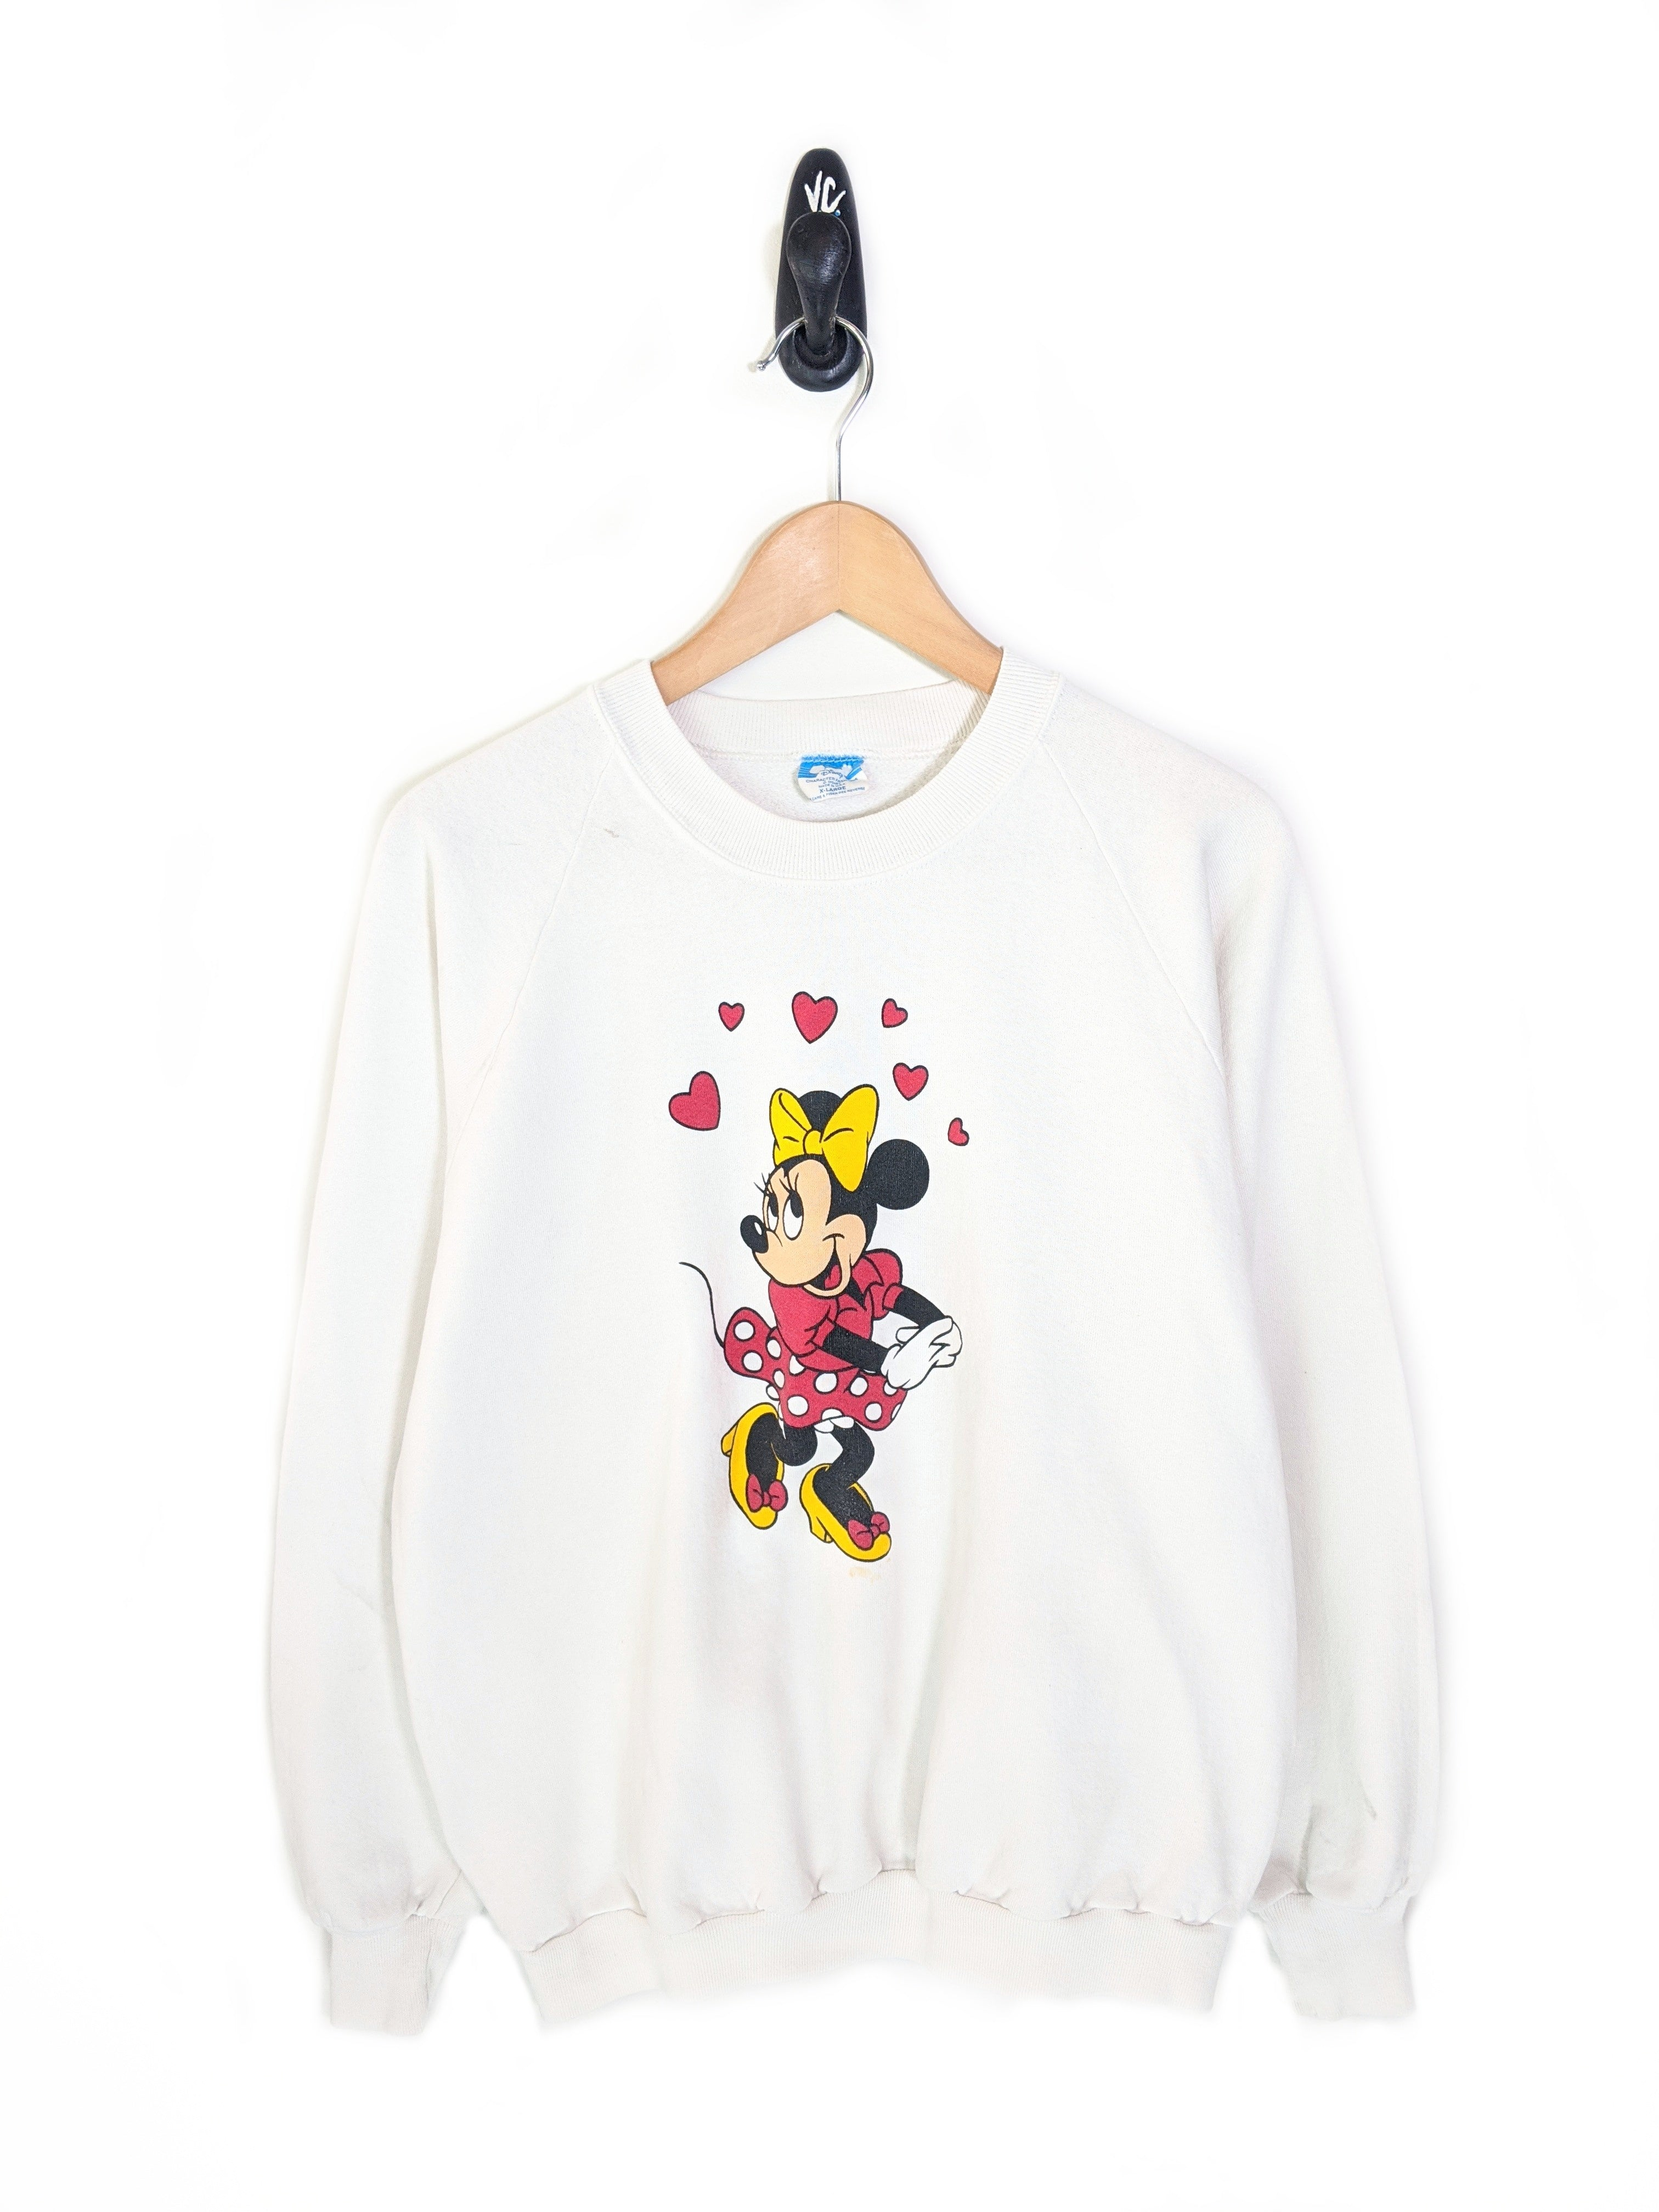 80's Minnie Mouse Sweatshirt (M)